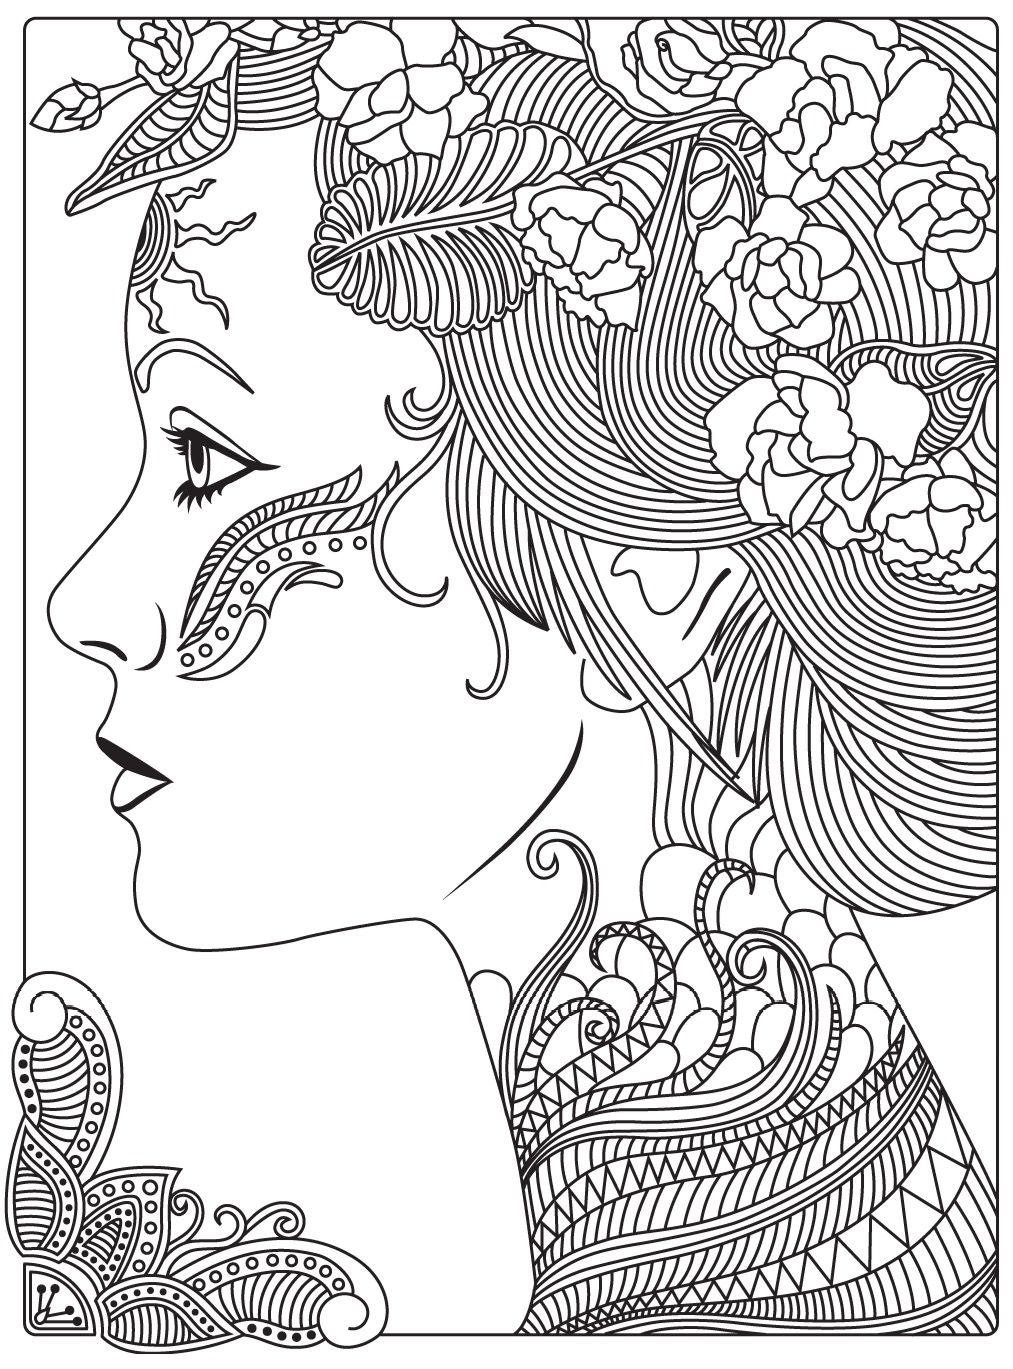 Women Colorish Coloring Book App For Adults Mandala Relax By Goodsofttech Coloring Books Coloring Book App Coloring Pages For Grown Ups